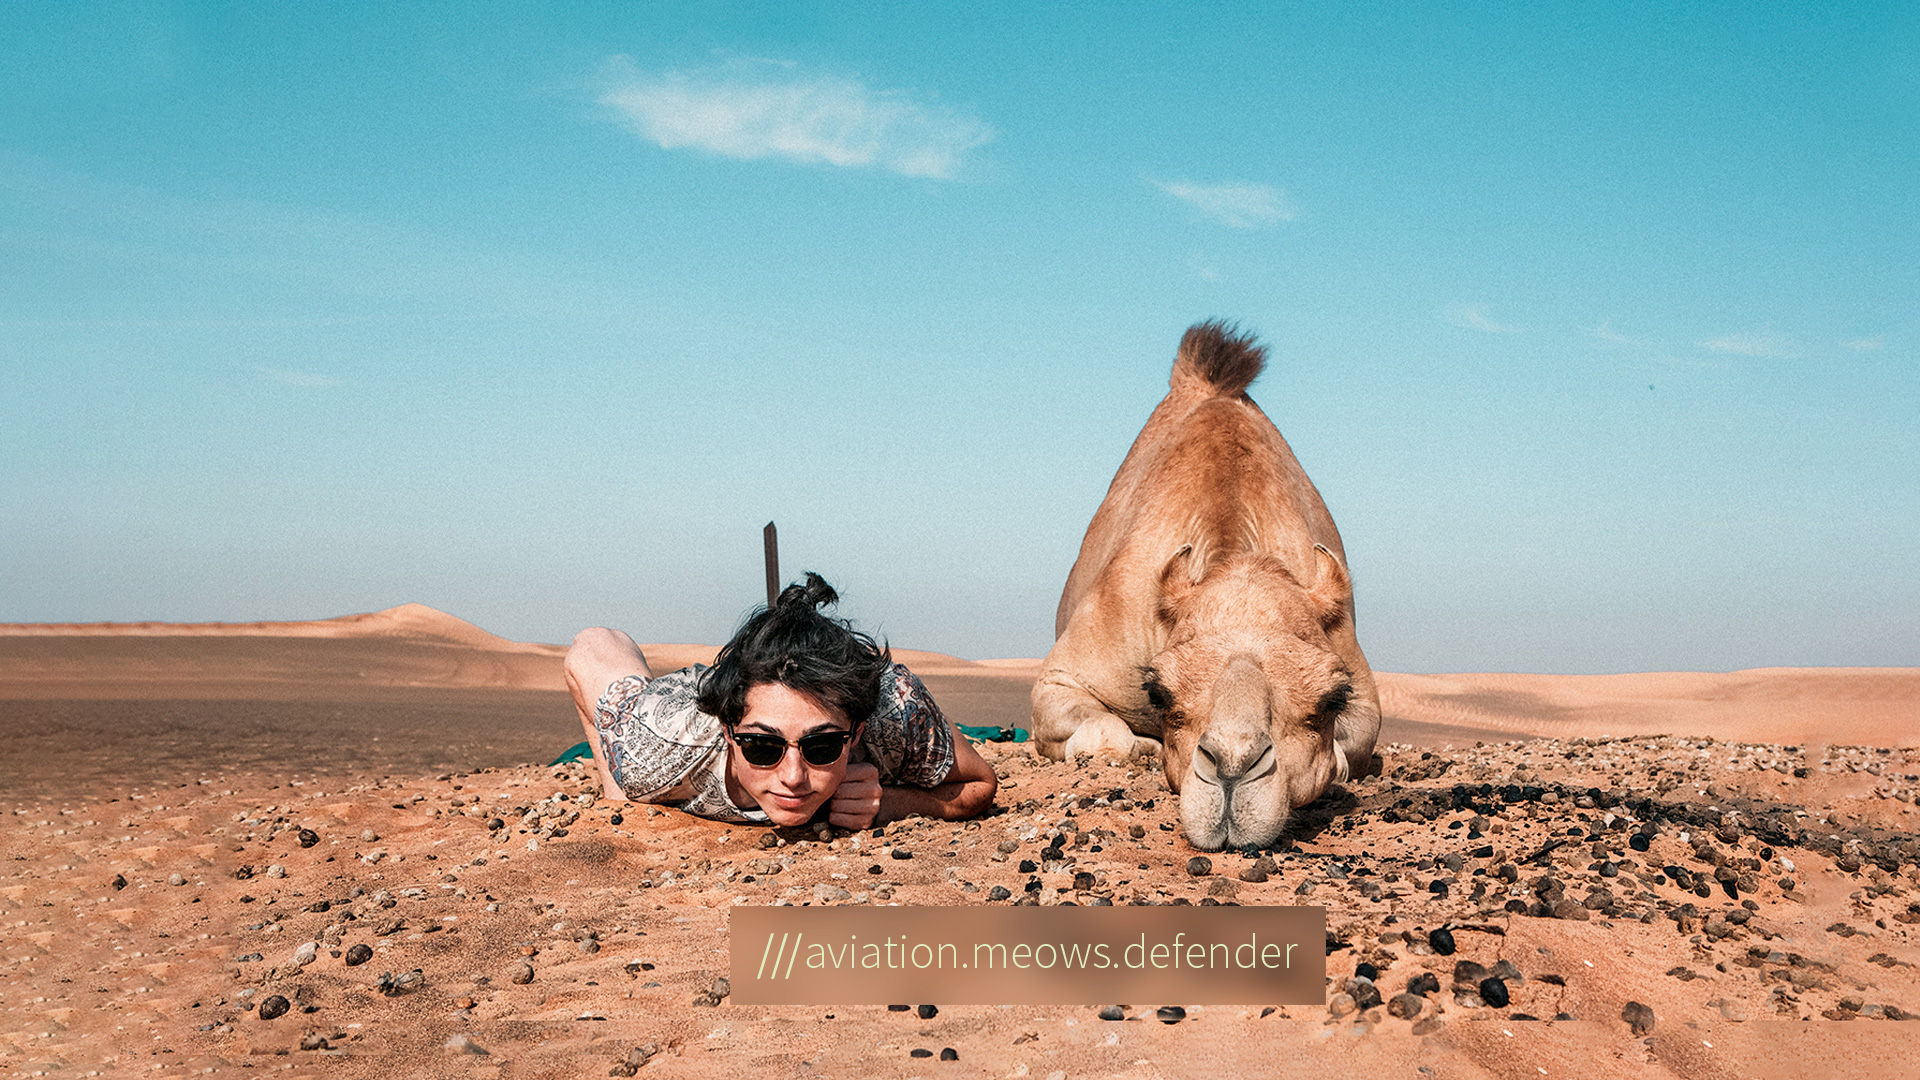 tourist and camel pose lying down in the desert at 3 word address aviation.meows.defender